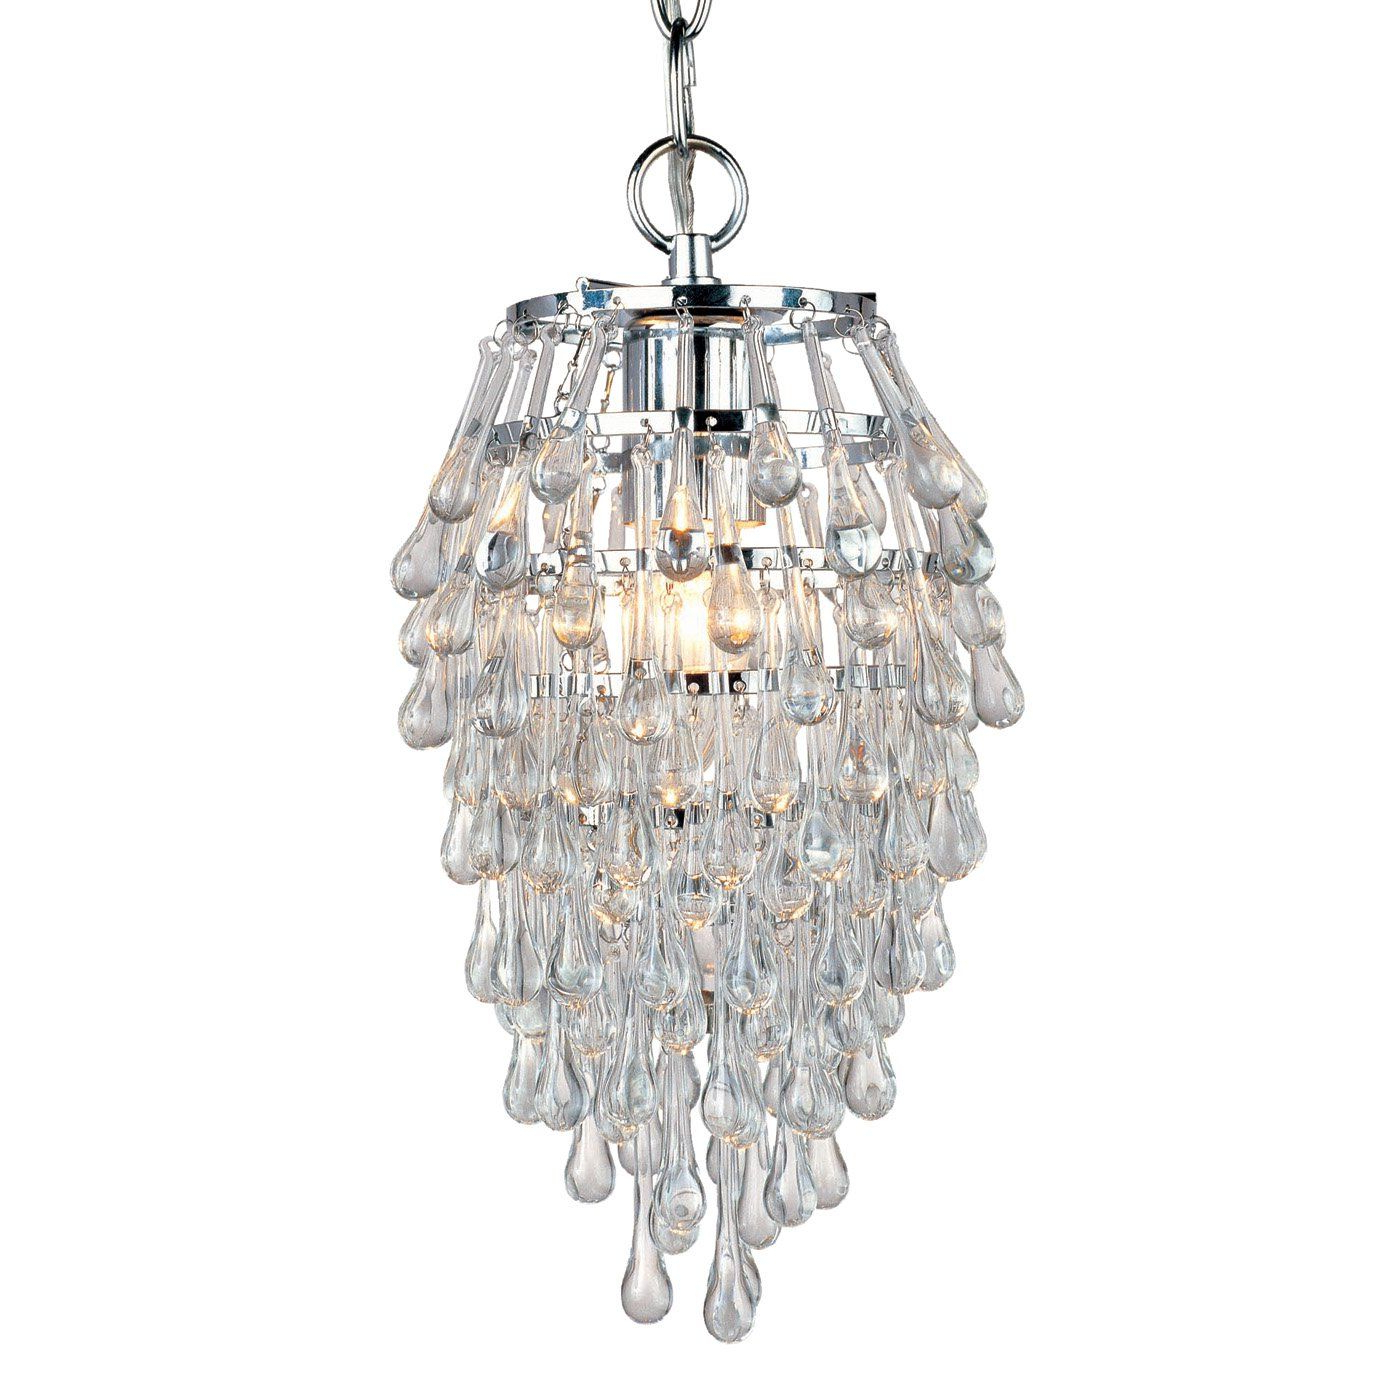 Well Known Use 3 In A Row – Af Lighting 4950 1H Crystal Teardrop Mini With Regard To Clea 3 Light Crystal Chandeliers (View 6 of 20)